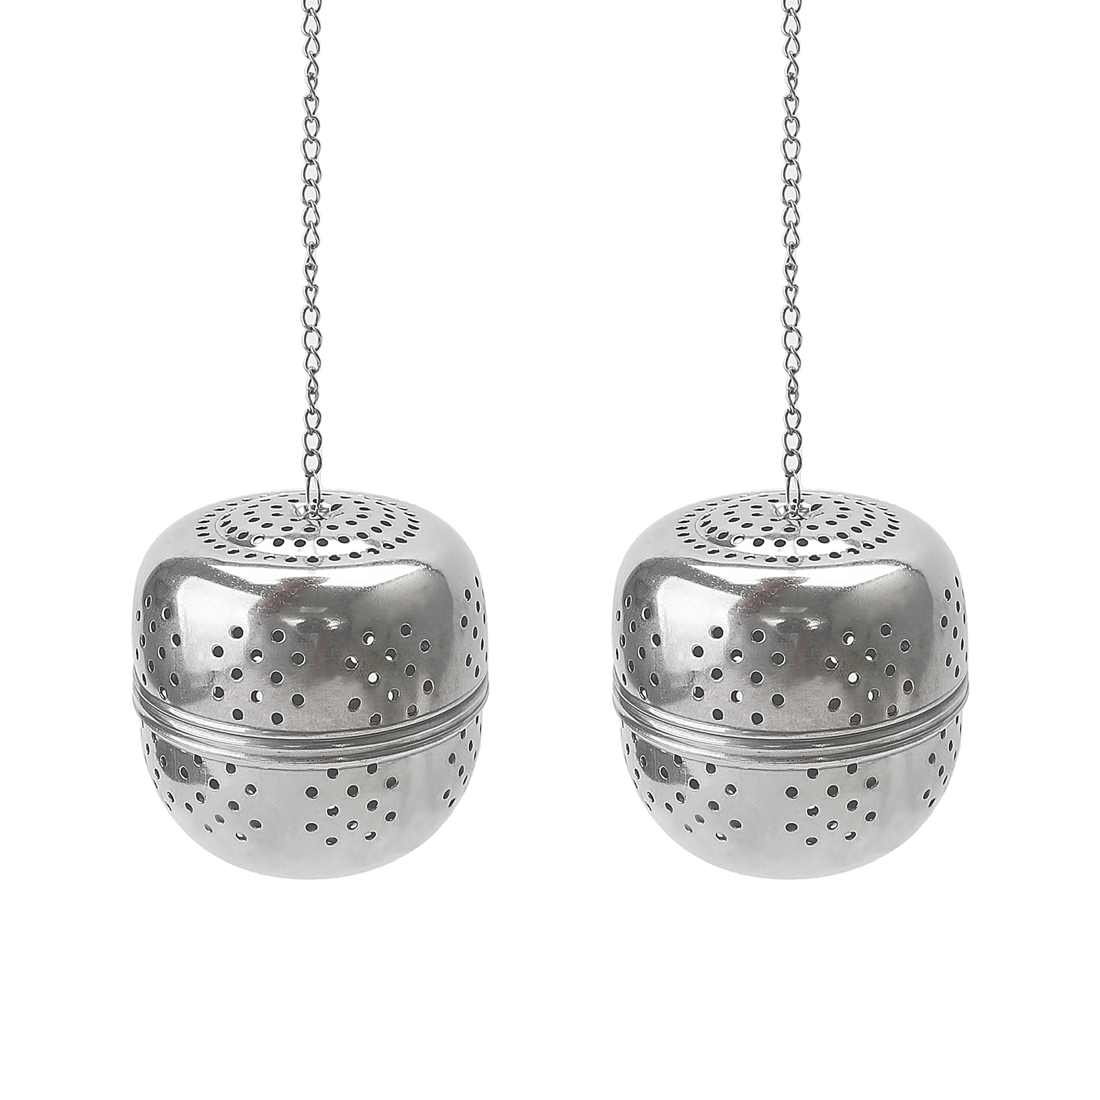 2pcs 55mm Dia Stainless Steel Ball Strainer Tea Leaf Spice Perfume Infuser